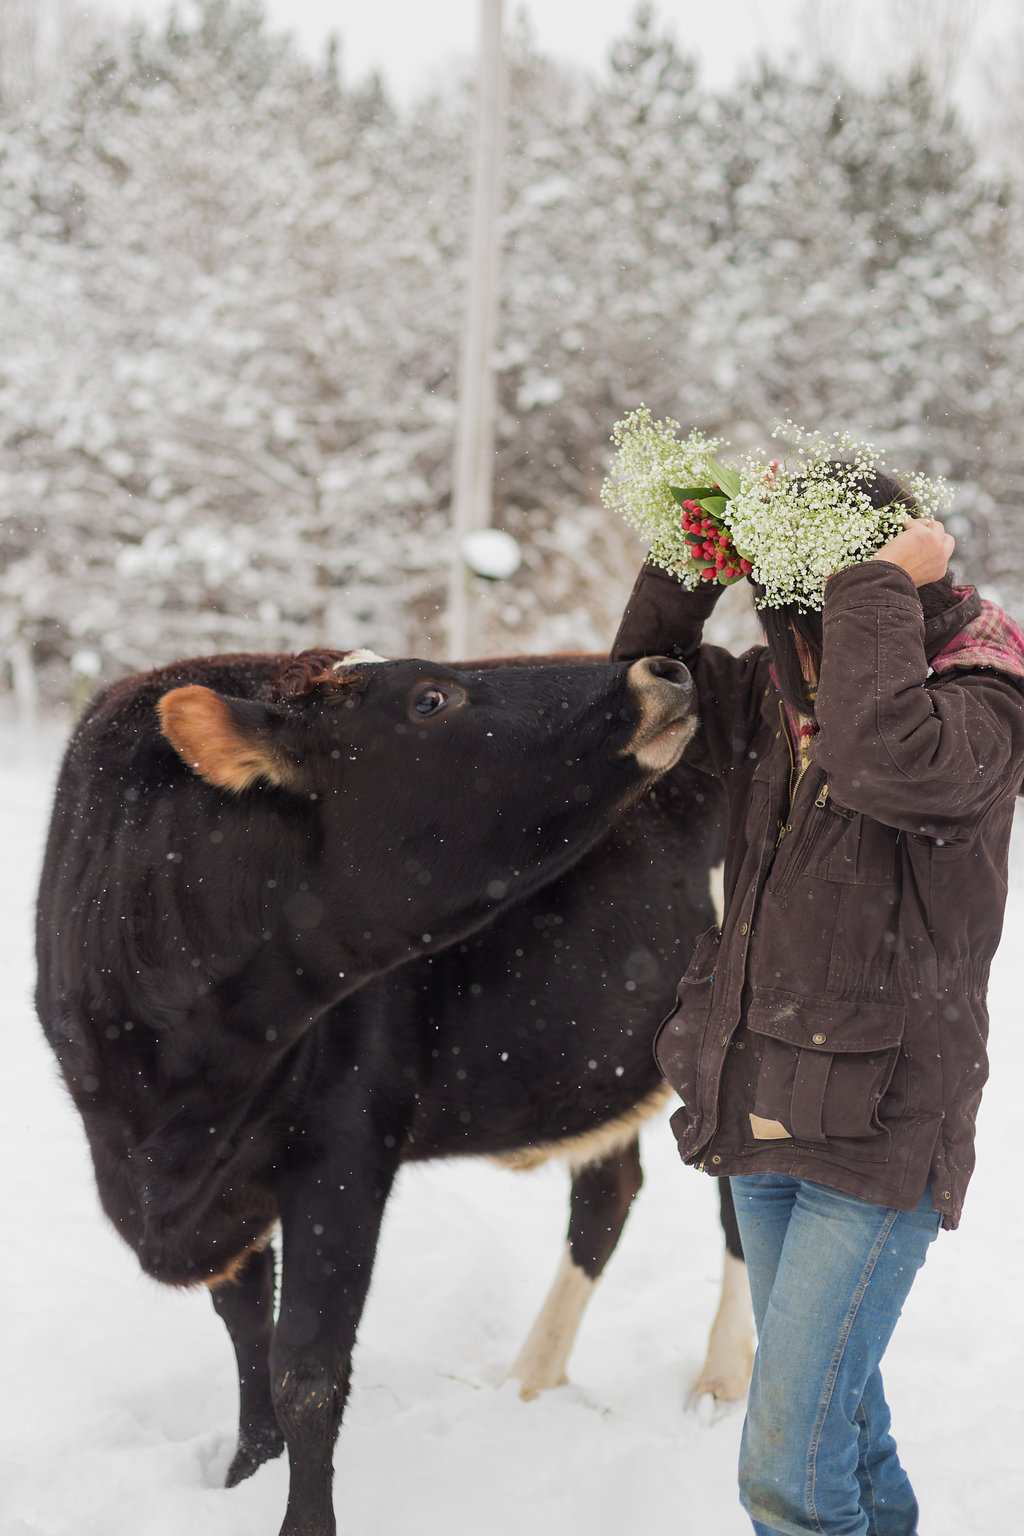 Toula. - In December 2015, Toula, a 6 month cow, was being sold on a Facebook group as though she were a commodity, she was being sold as a feeder cow. Pina couldn't erase her face from her mind, specially when she visited a place close to her workplace that feeds cattle before sending them to slaughter, their last days before being processed. At the same time, videos of high speed slaughterhouses bumped into Pina's facebook, making impossible to pass the opportunity of saving her life. Like billions of cows around the world, Toula was an innocent victim of the meat and dairy industry. After negotiating with the farmer, she got Toula, the first bovine of the sanctuary, immediately, a connection between Pina and Toula was established. Pina feels a continue sorrow for the victims of the animal industry, she knows Toula is only one in billions.Now a over 3 years old, Toula is a very much loved and respected member of the Fauna family. She adores Pina and her adoptive brother, Benny. We hope she have a long and happy life at the sanctuary and never know anything but good things.